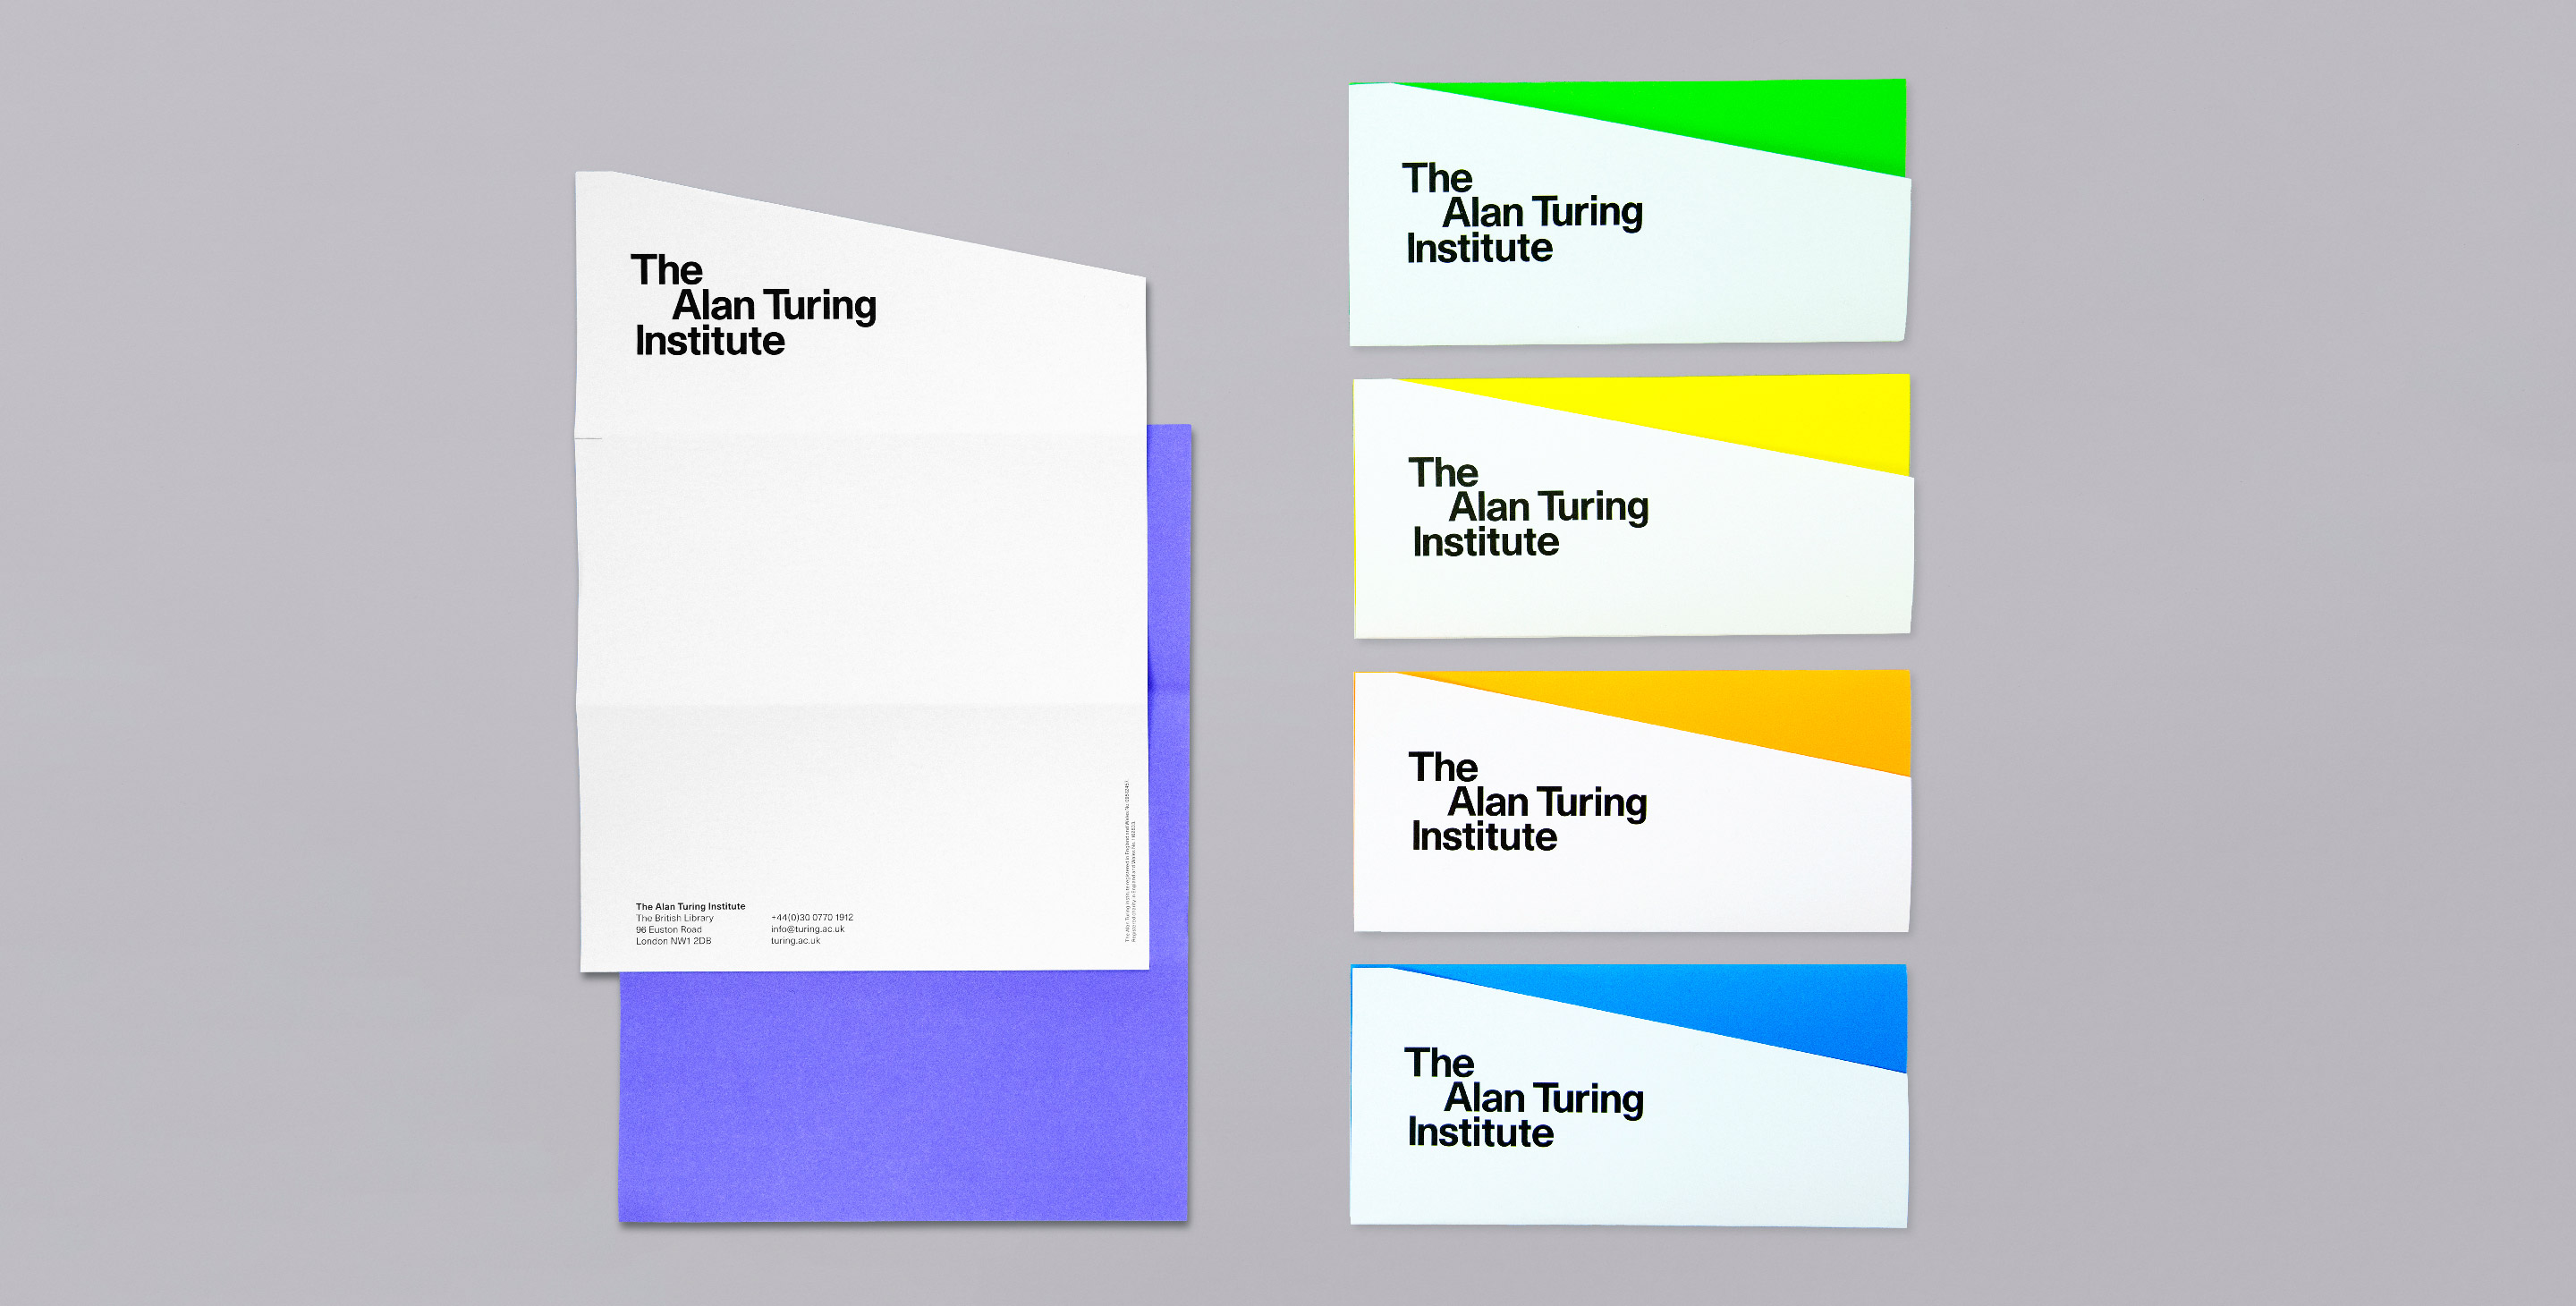 The Alan Turing Institute stationery set